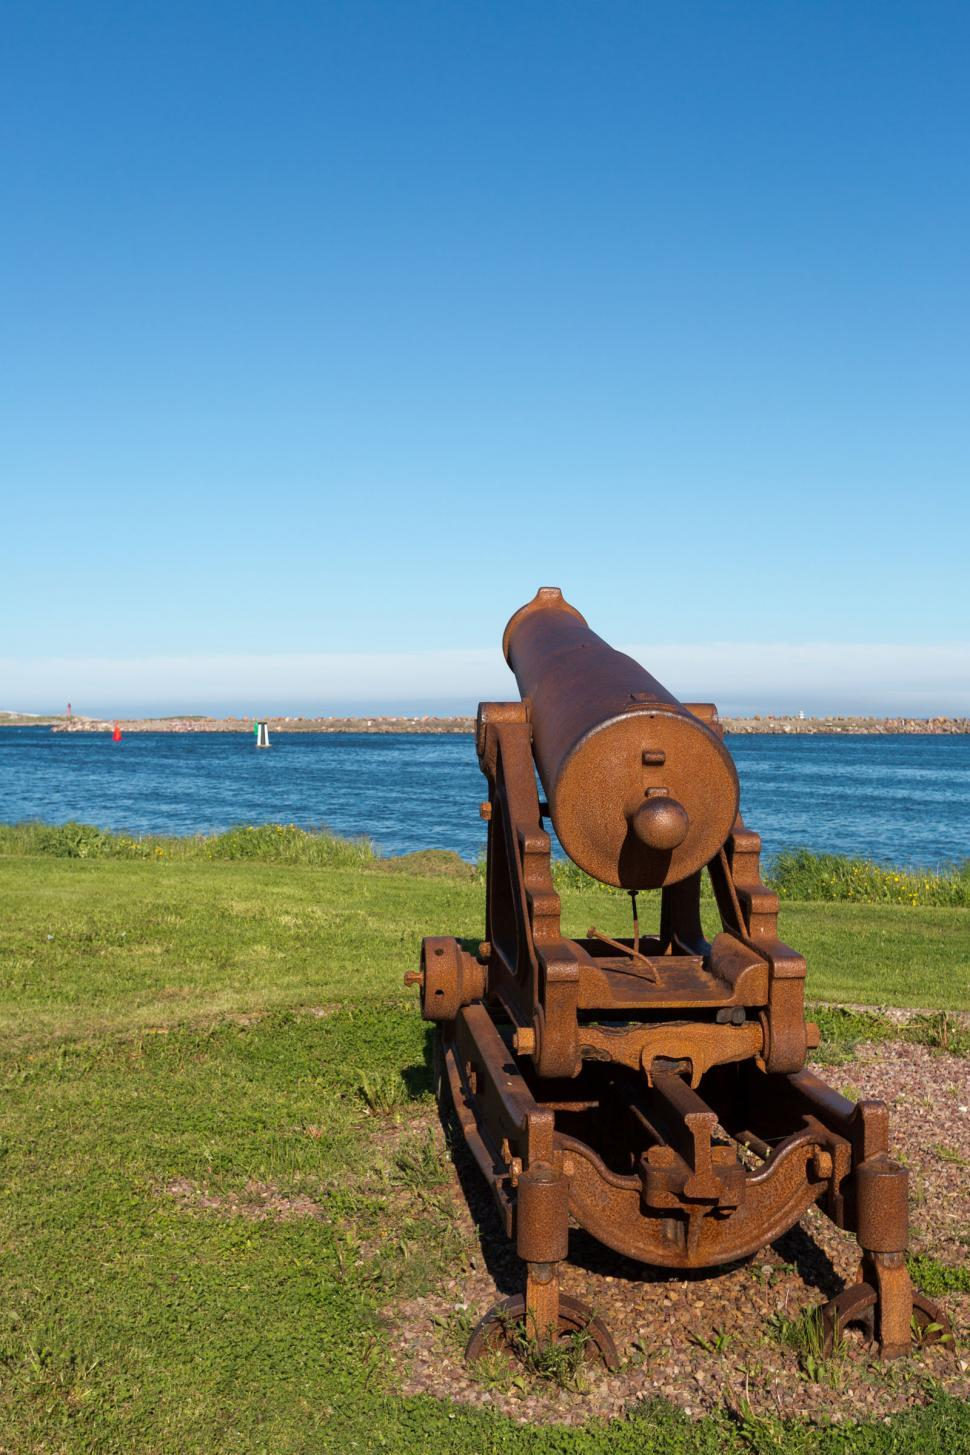 Download Free Stock HD Photo of Cannon Online